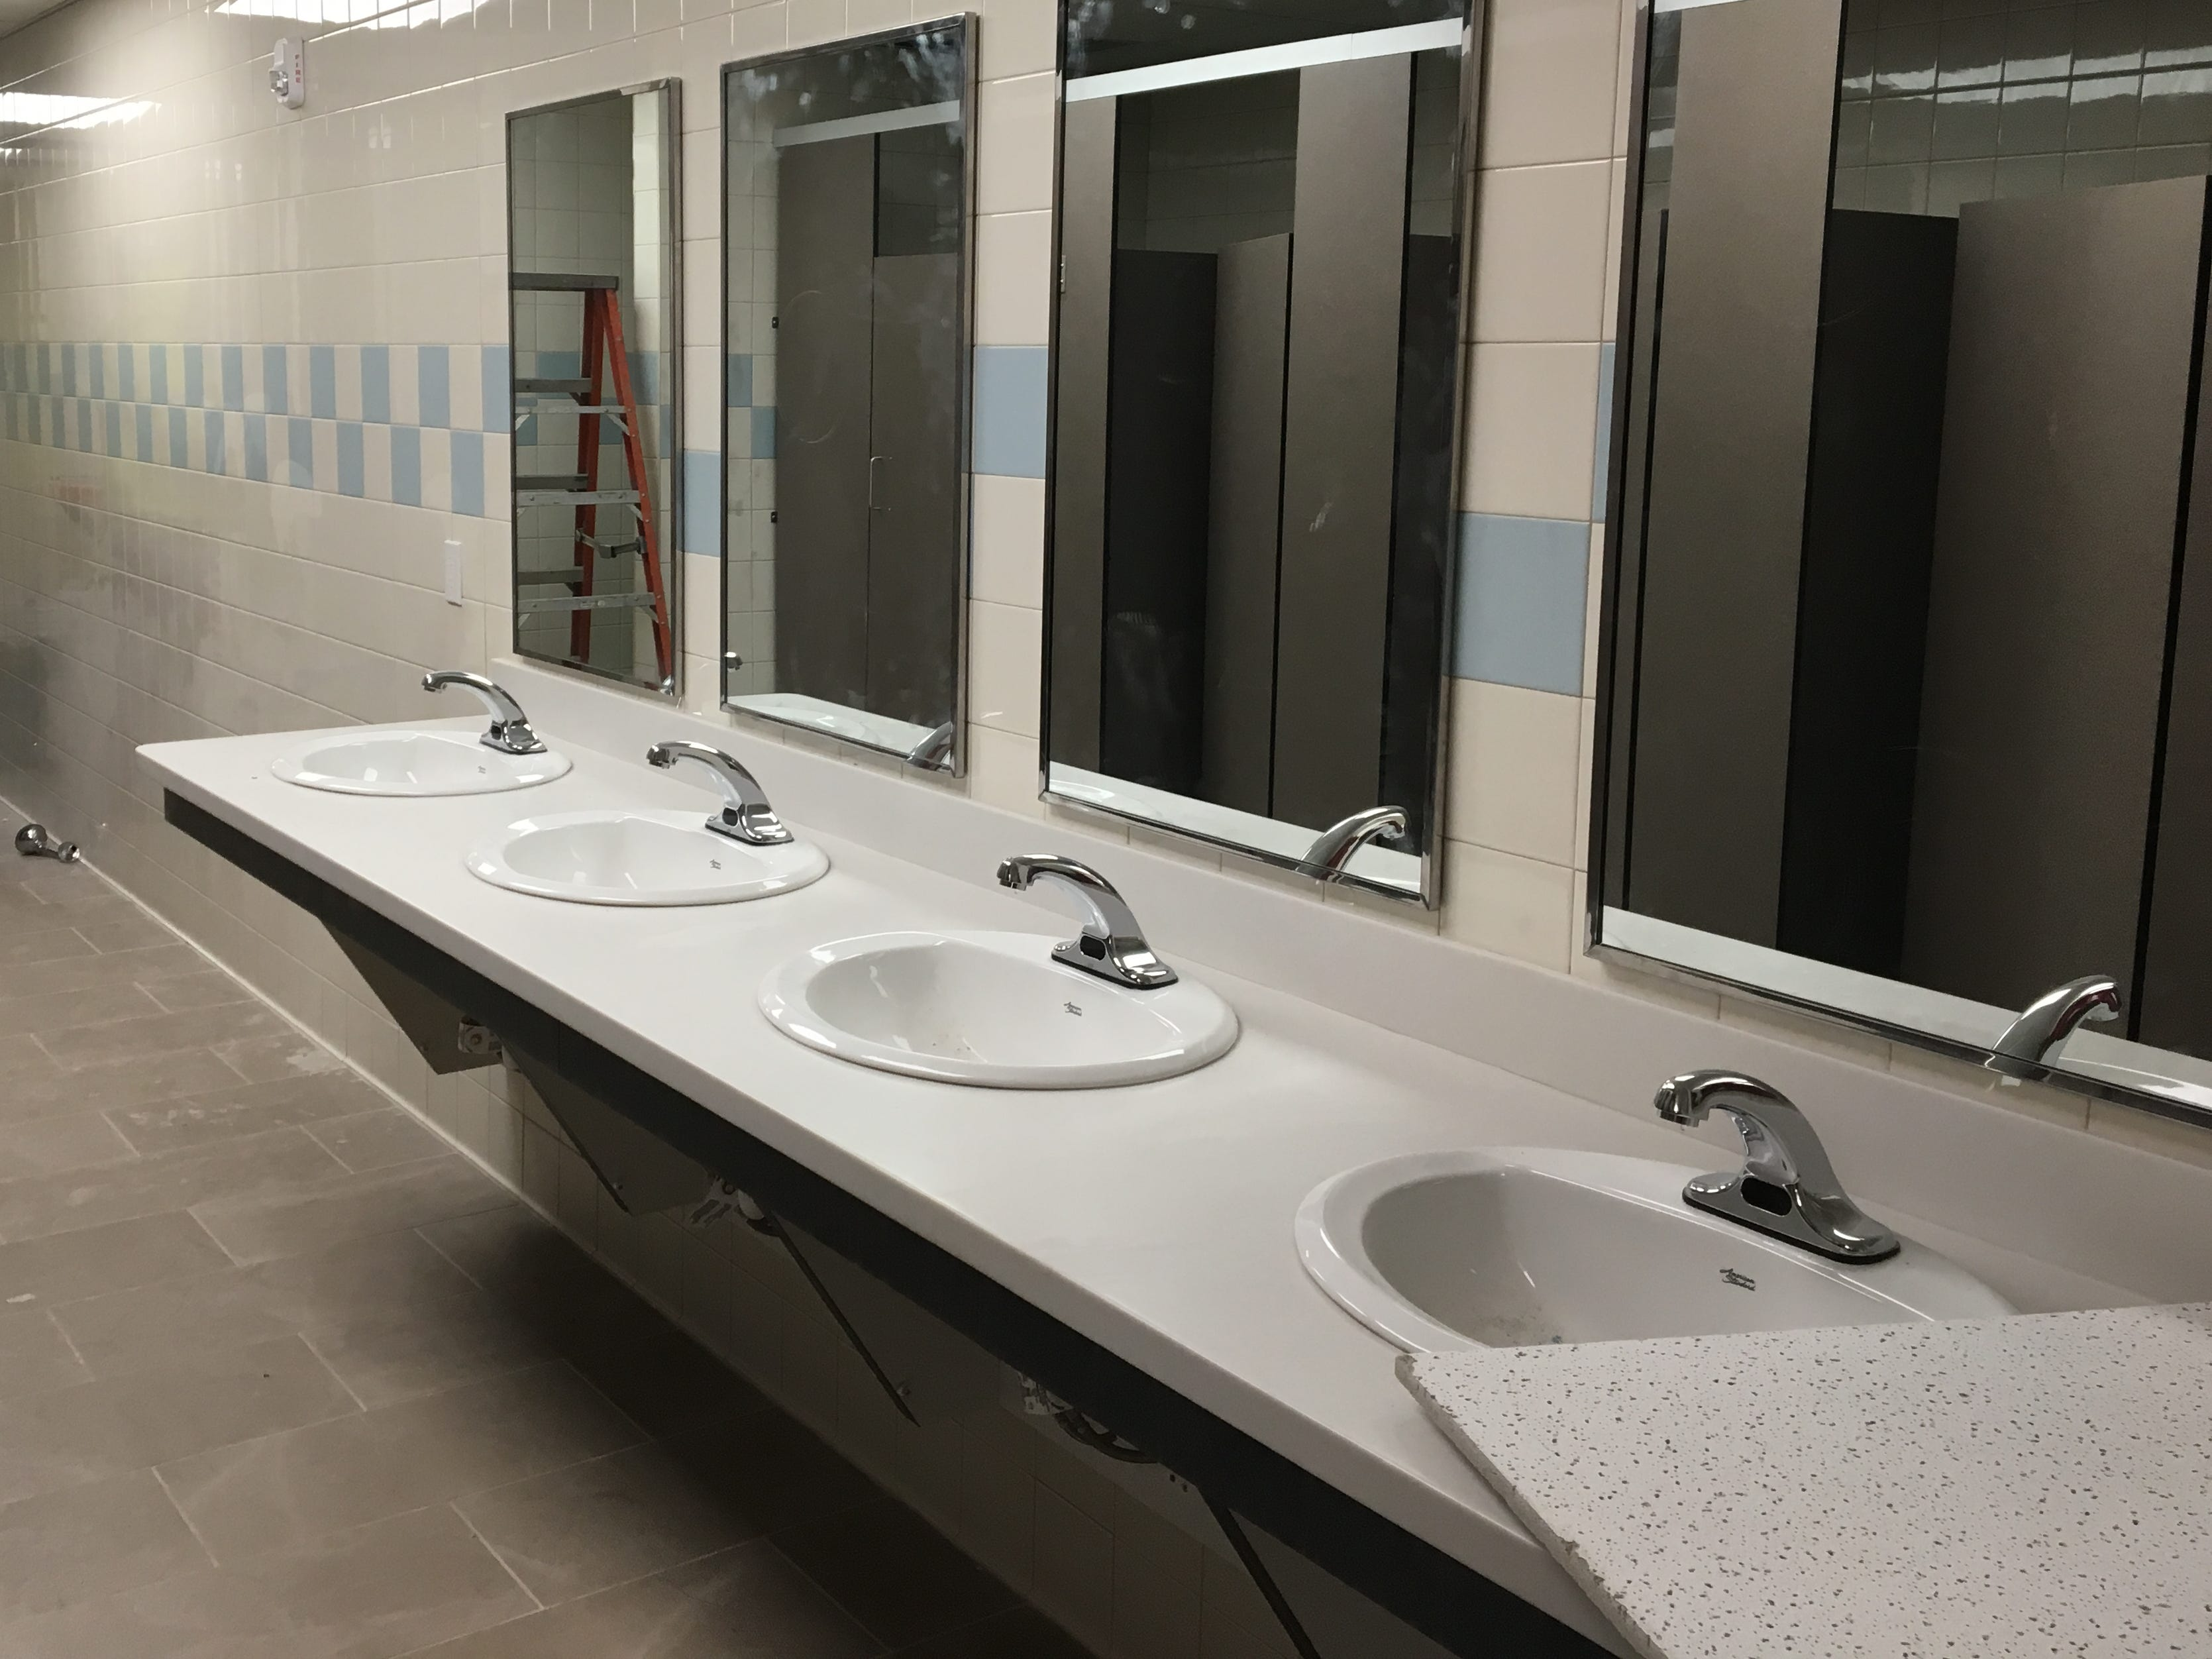 Work continues on the bathrooms. Project 180 is a new 180-bed residential treatment facility. It offers treatment on demand, within 180 minutes, to assist individuals in turning their lives around 180 degrees.